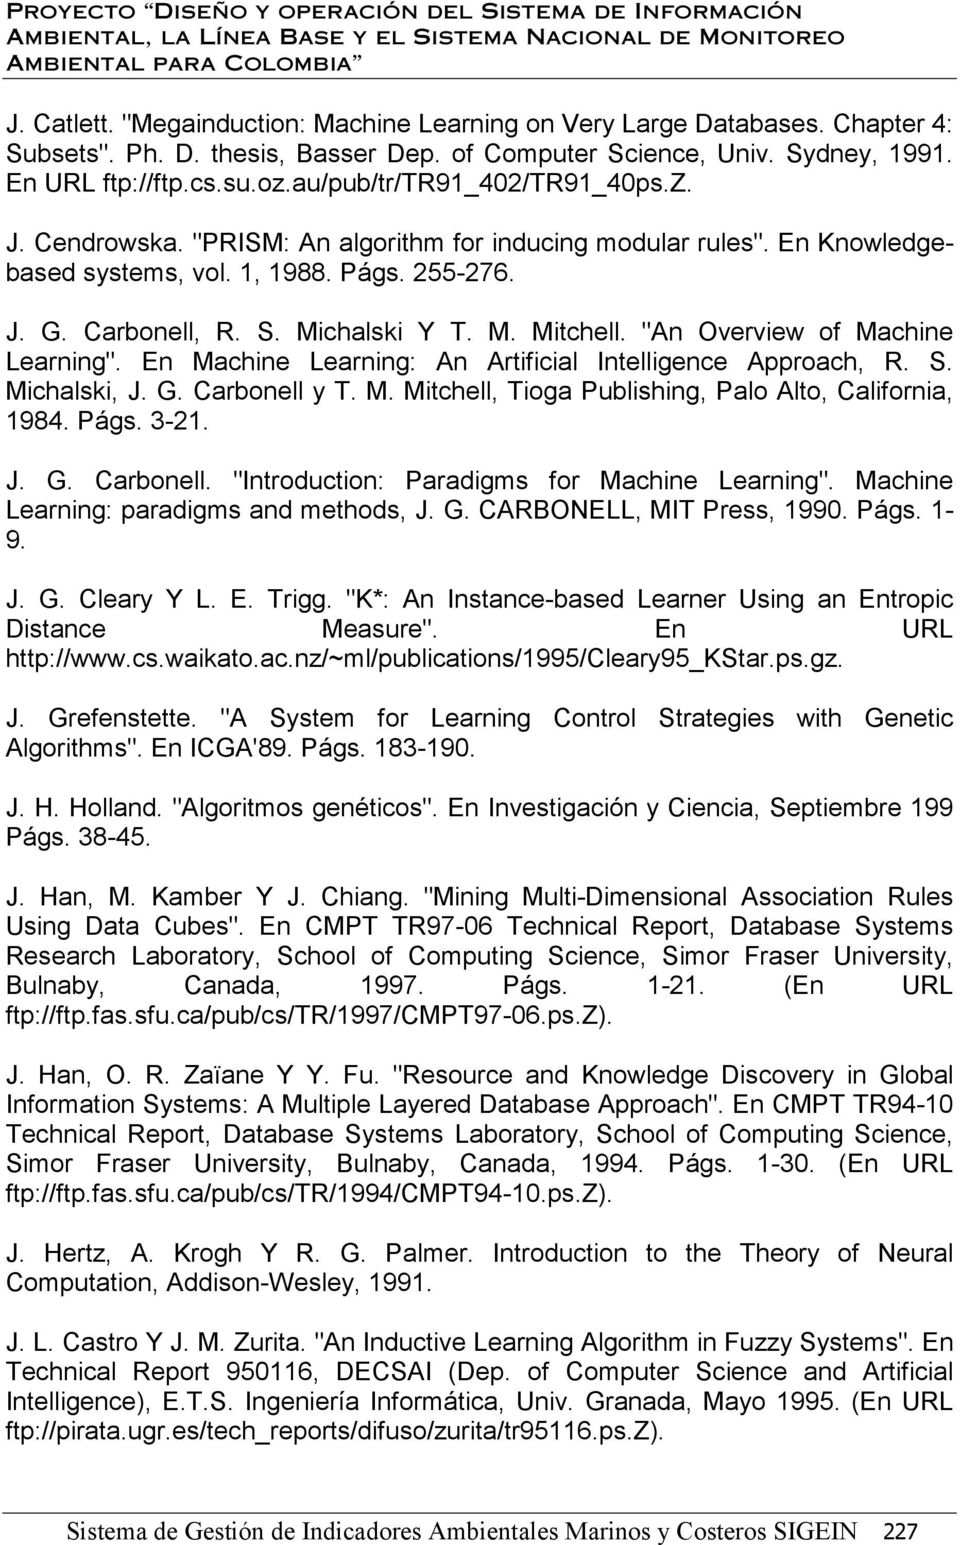 """An Overview of Machine Learning"". En Machine Learning: An Artificial Intelligence Approach, R. S. Michalski, J. G. Carbonell y T. M. Mitchell, Tioga Publishing, Palo Alto, California, 1984. Págs."